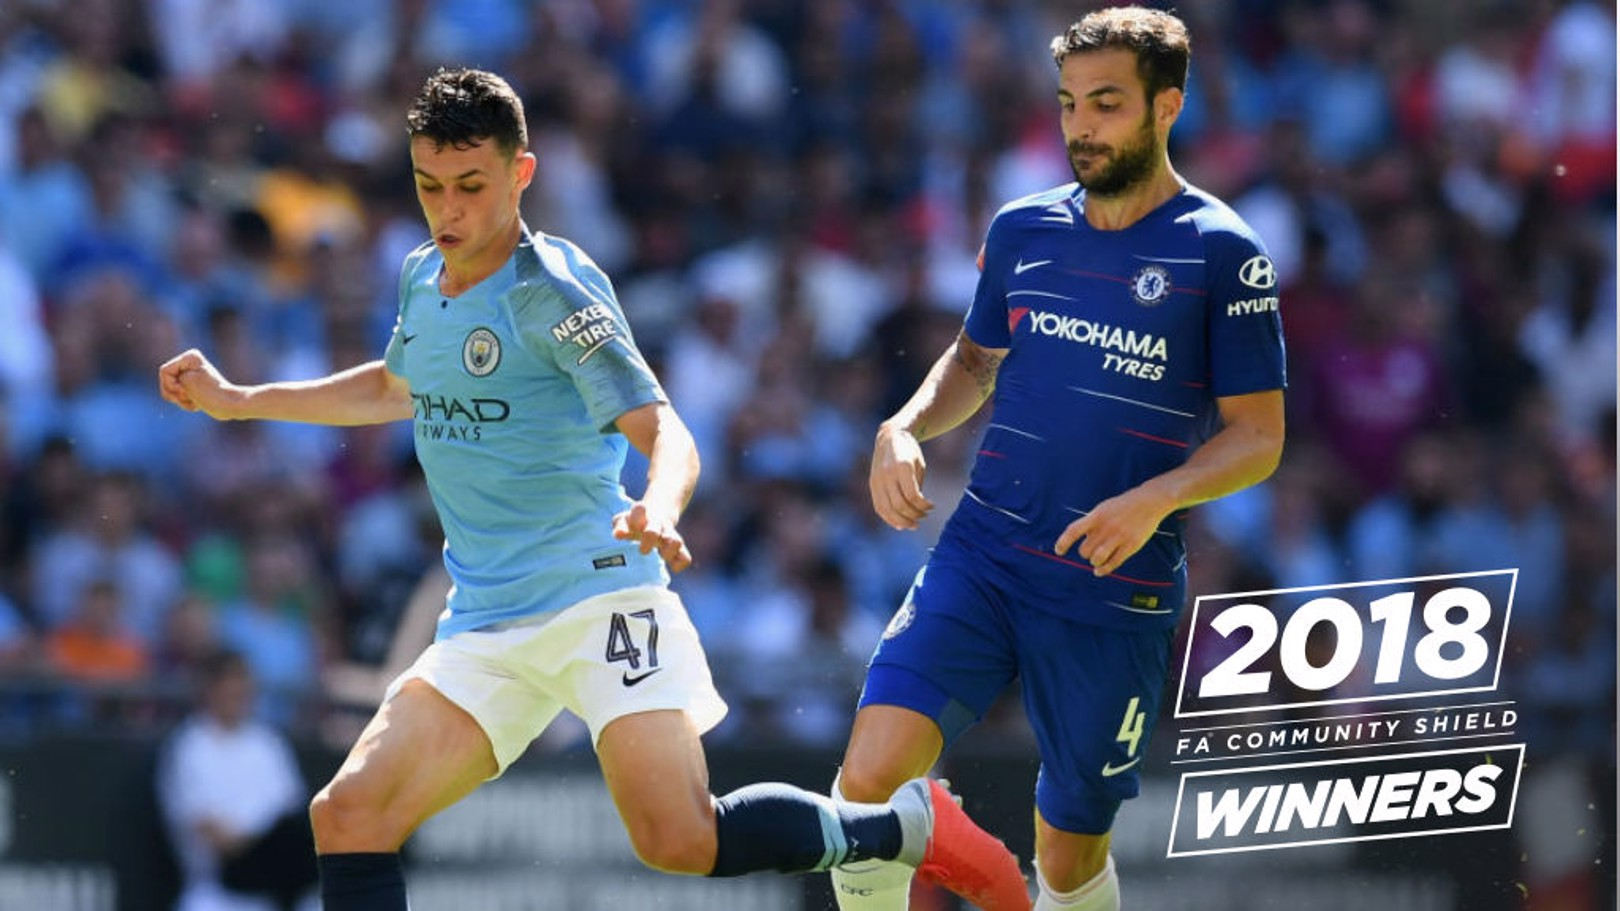 YOUNG GUN: Phil Foden produced a fine individual display as Manchester City beat Chelsea 2-0 to win the Community Shield